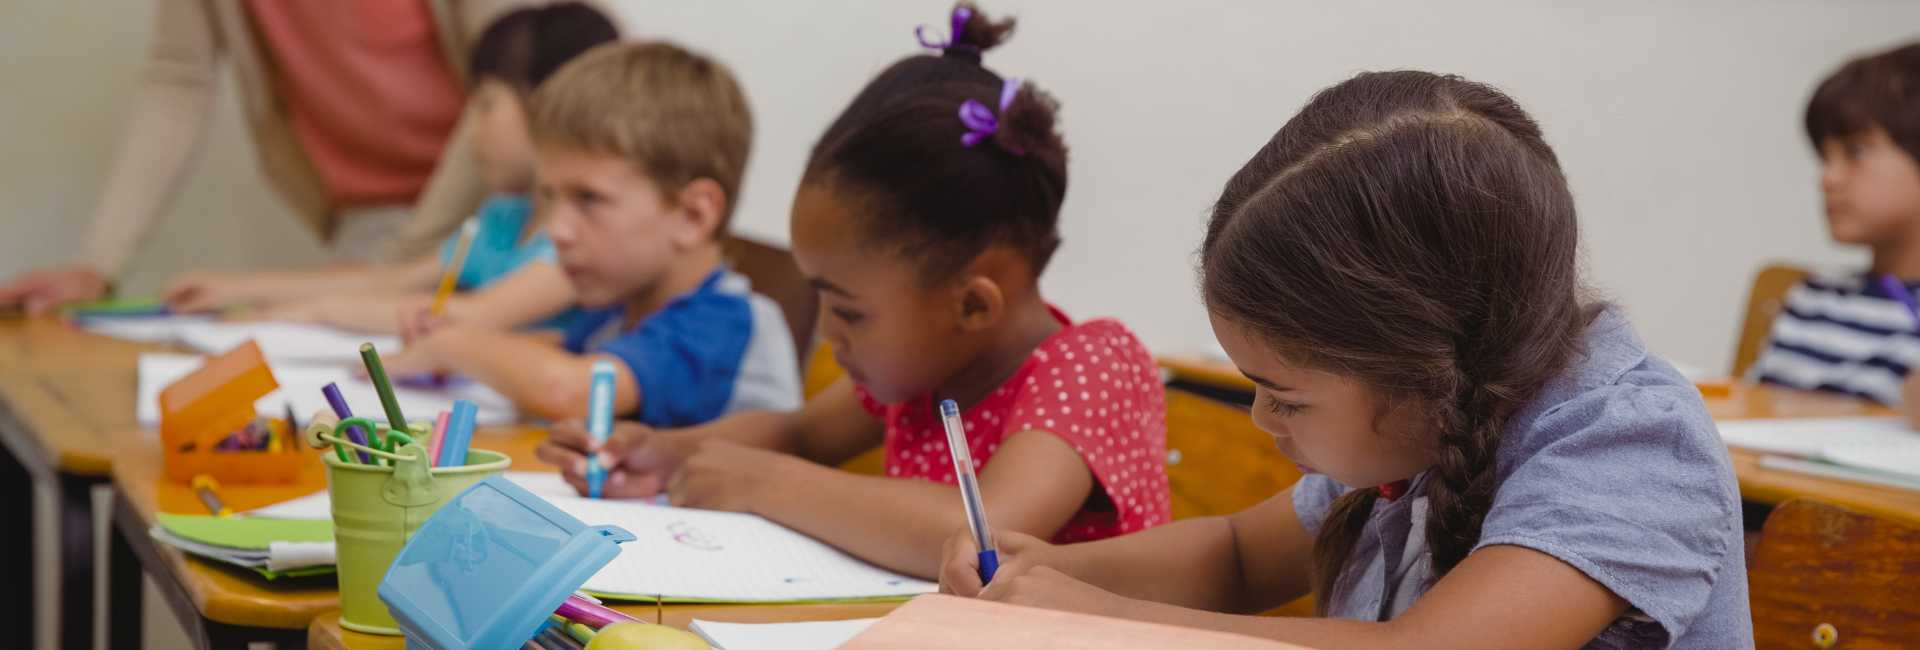 a group of children writing at a desk